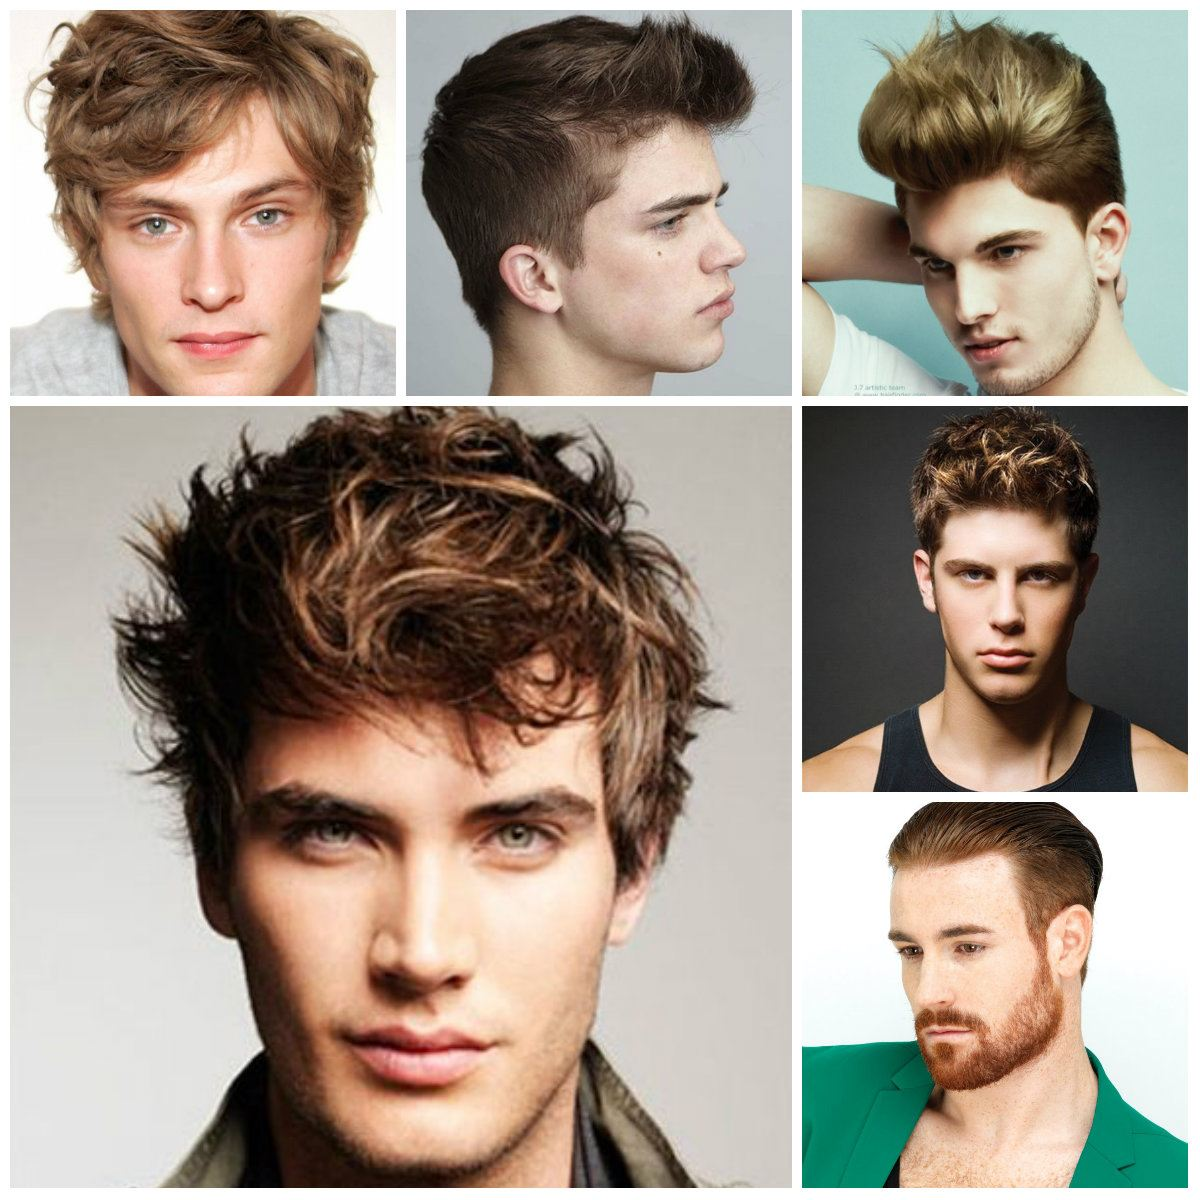 8 Hair Color Ideas For Men According To Skin Tone In 2018